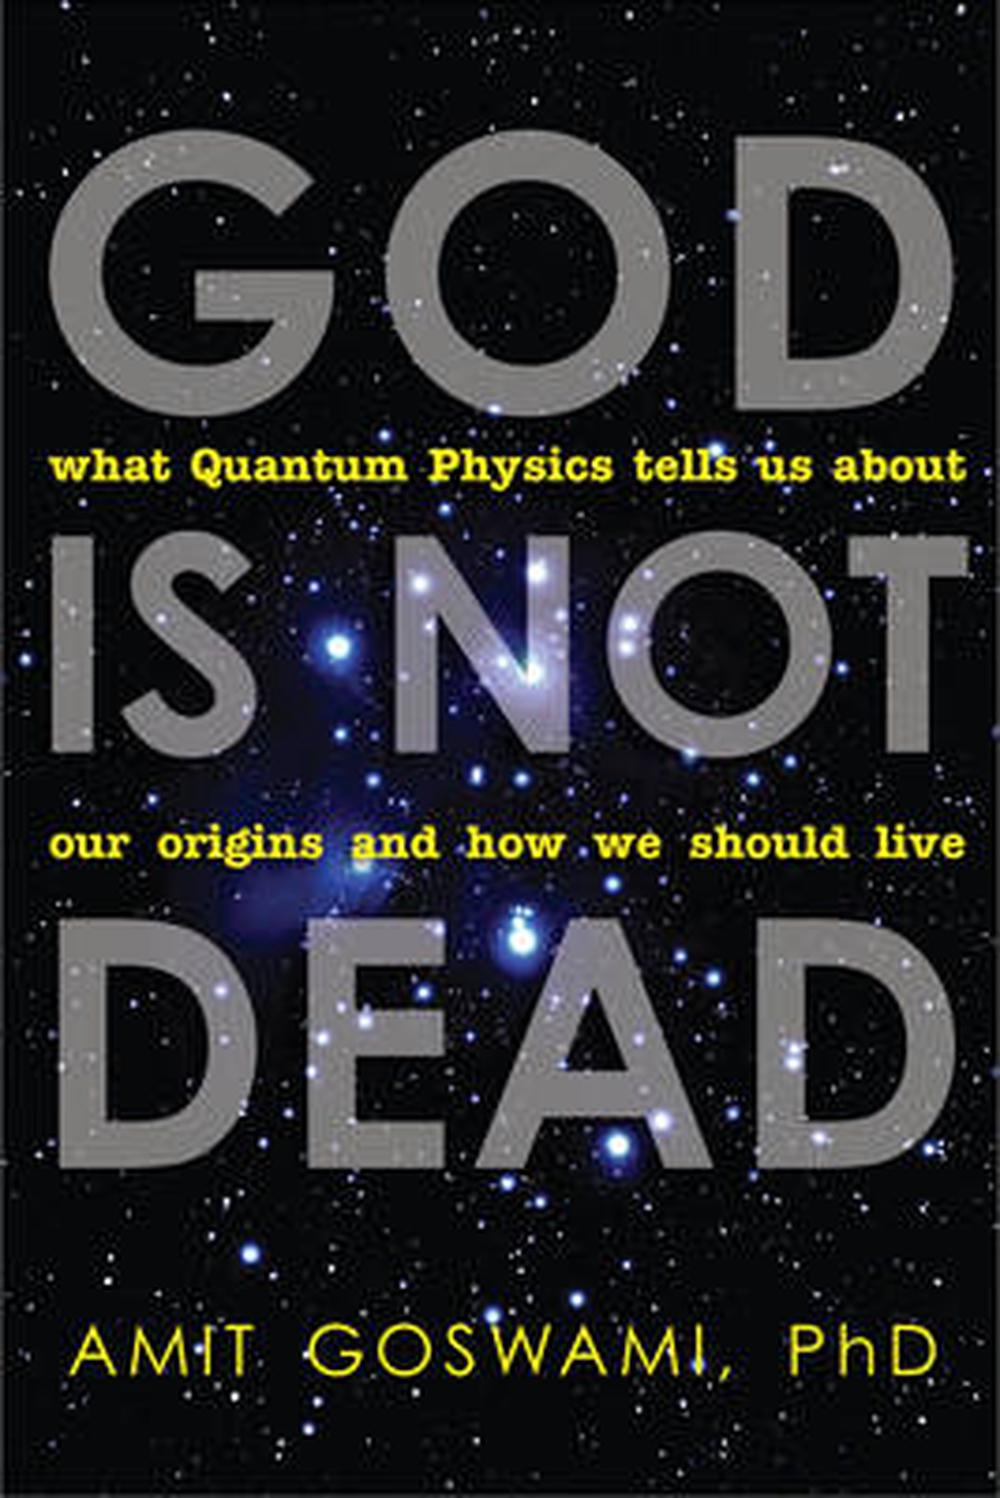 what does quantum physics tell us